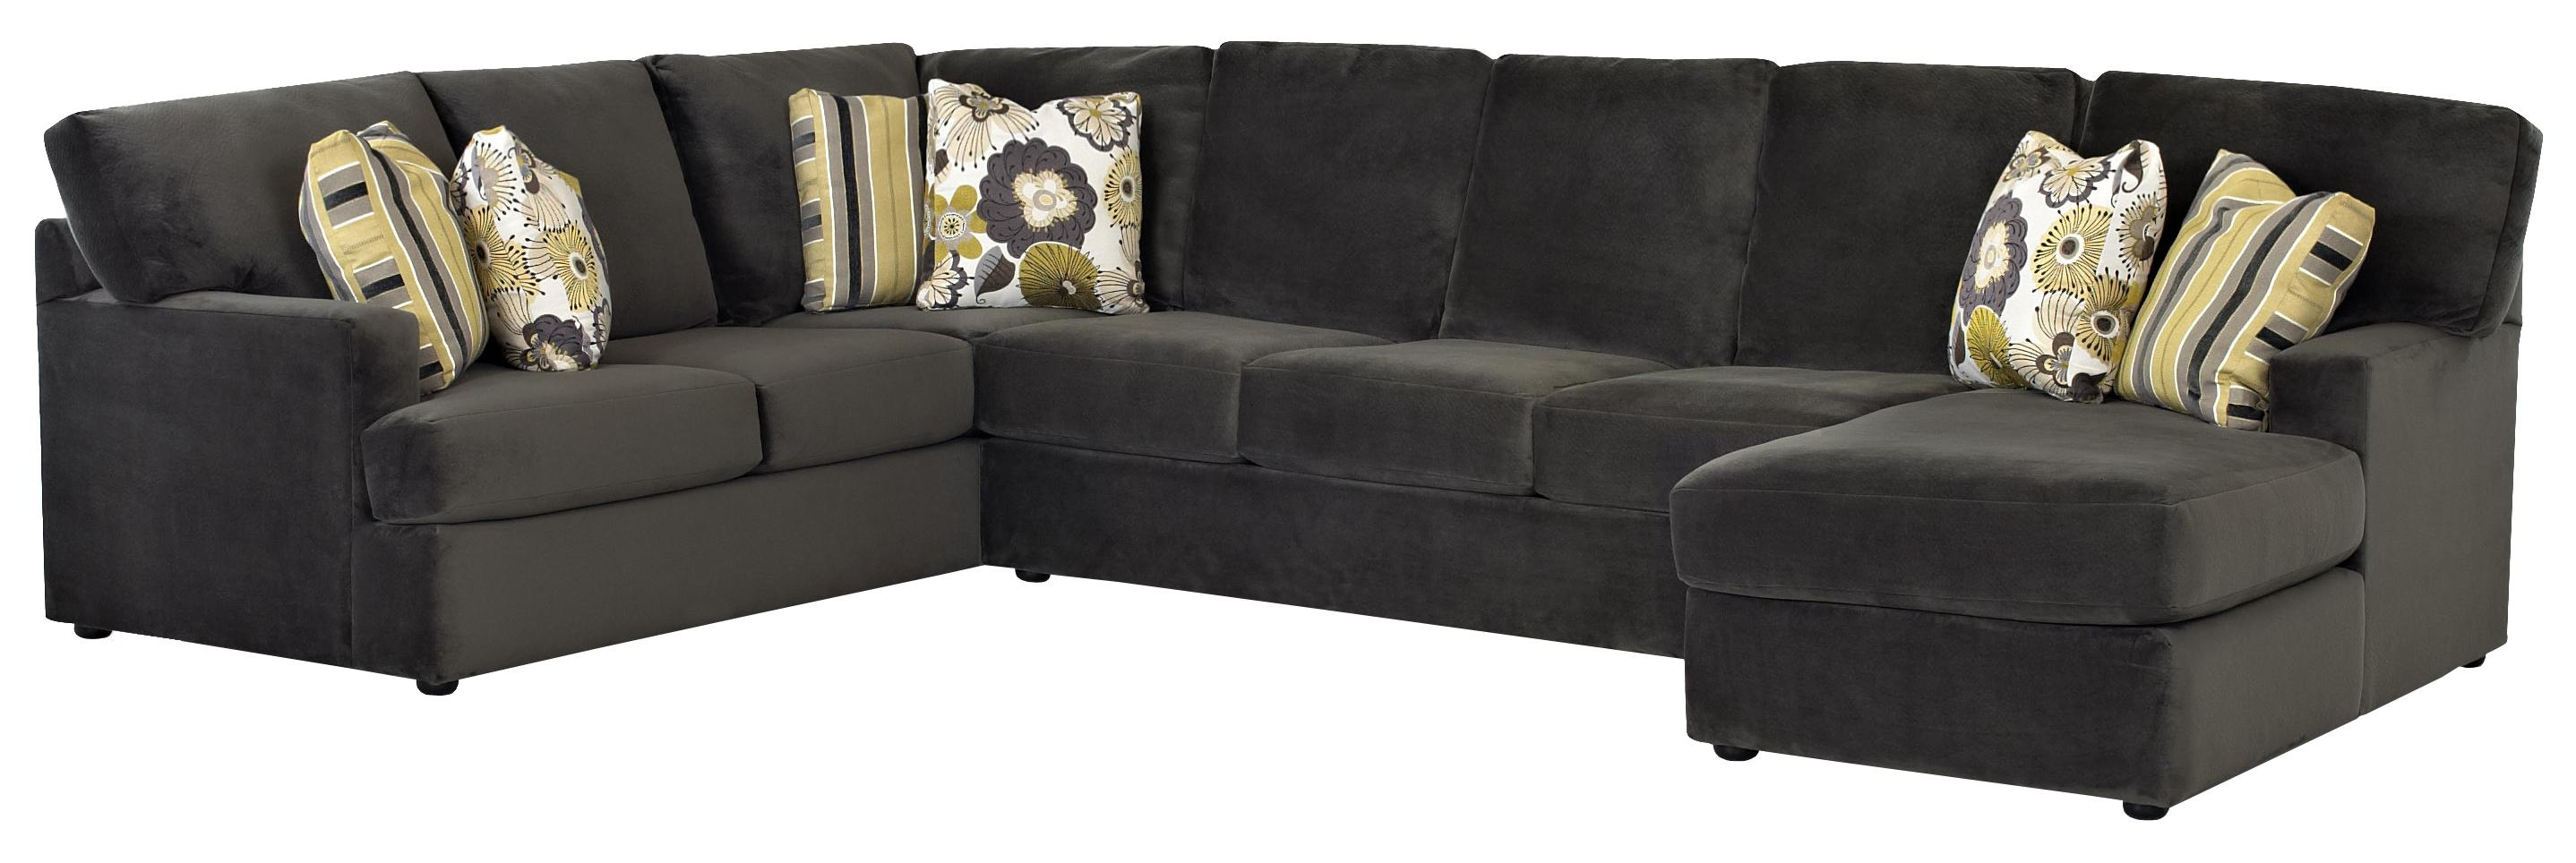 Klaussner Sofa Reviews Klaussner Leather Sofa Plus Grey Sectional Or Mid  Century Modern   TheSofa